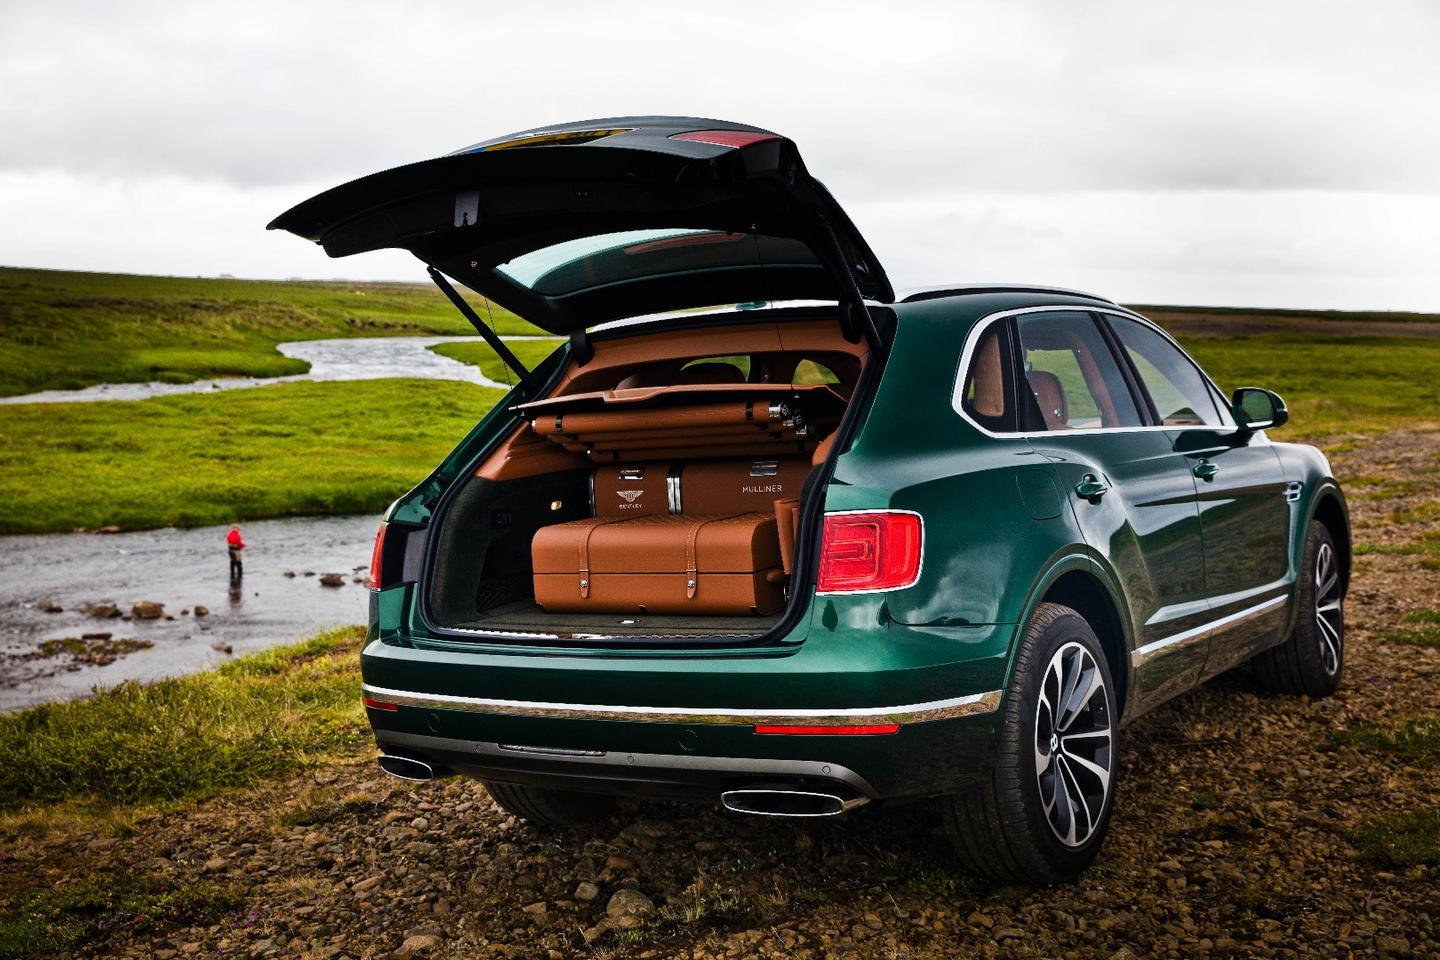 The Bentley Fly Fishing by Mulliner highlights how Mulliner can develop personalized Bentayga editions for sporty folk